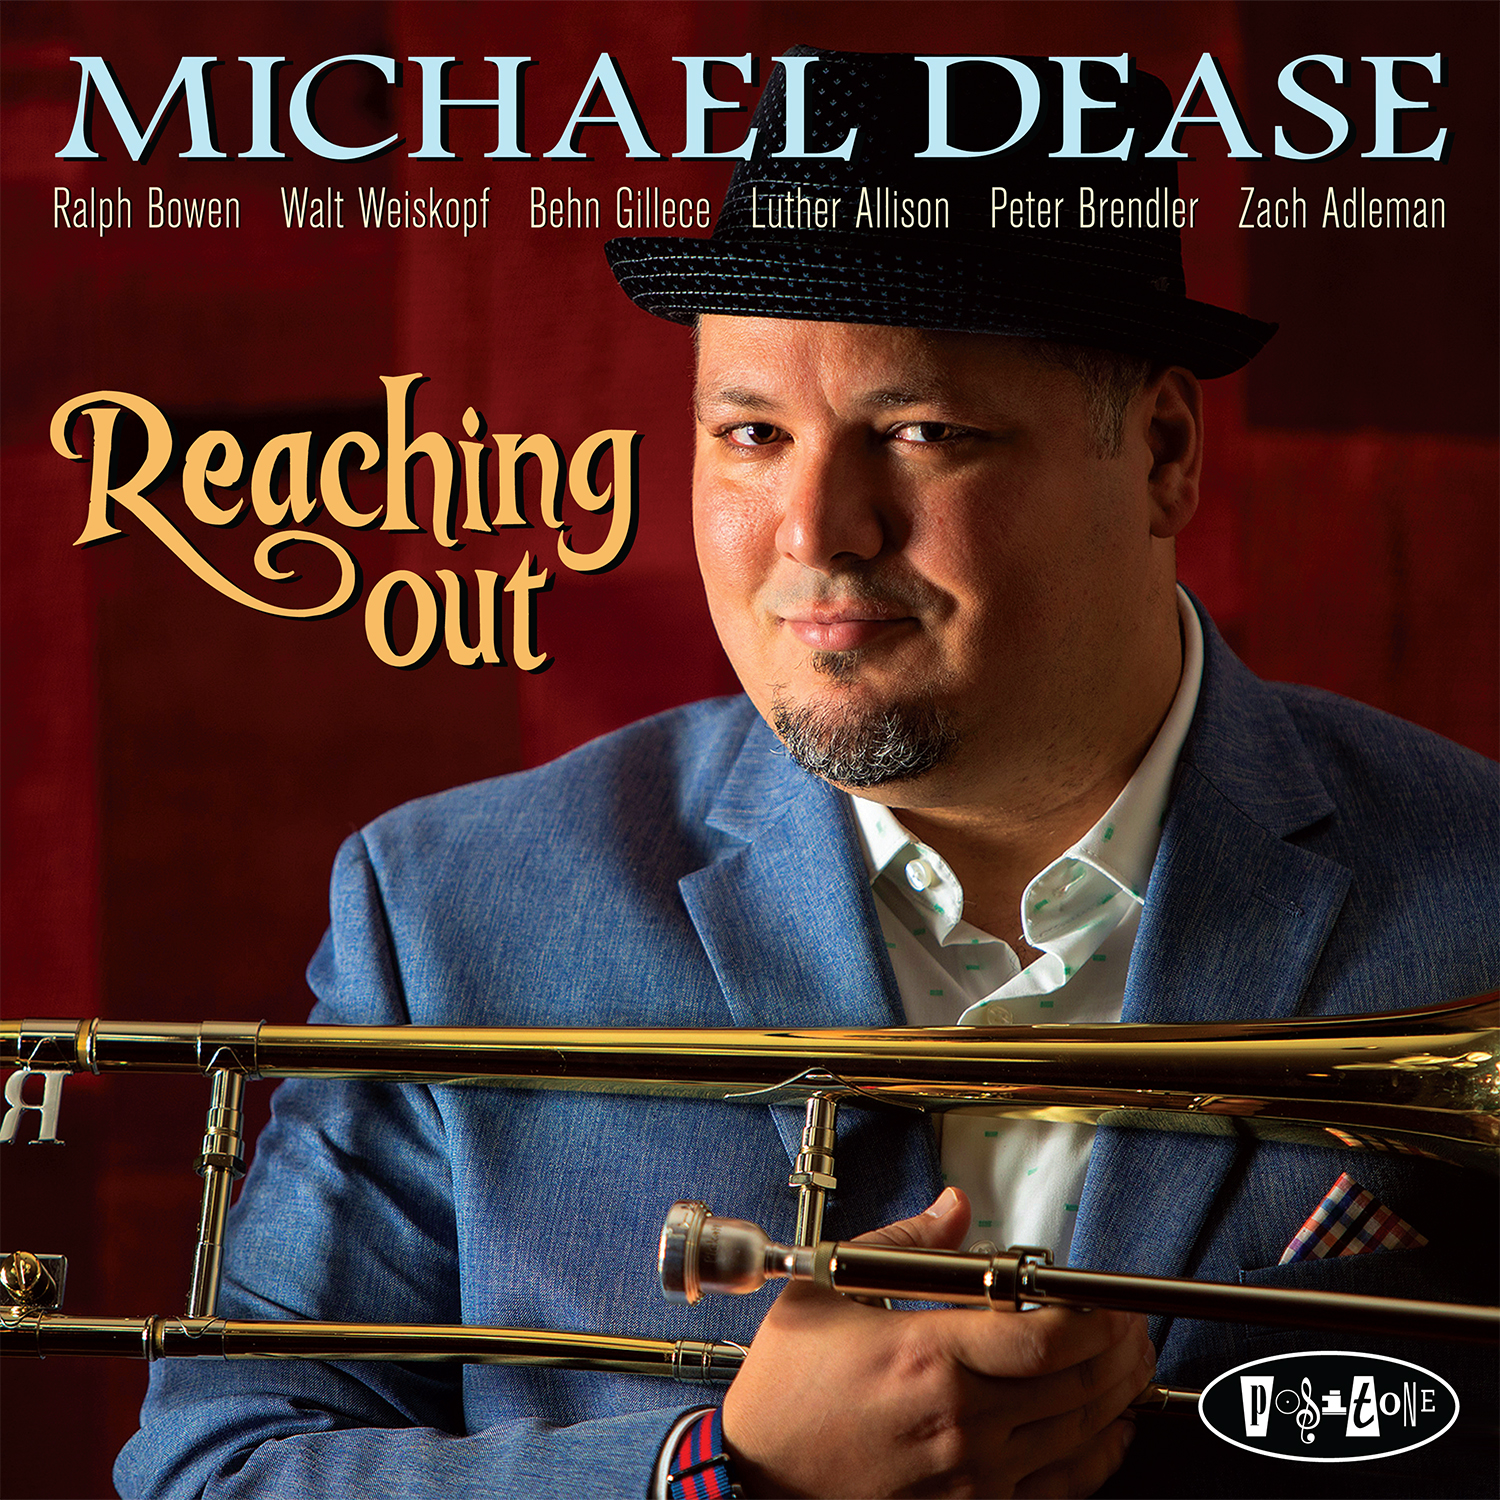 Michael Dease - Reaching Out cover.jpg